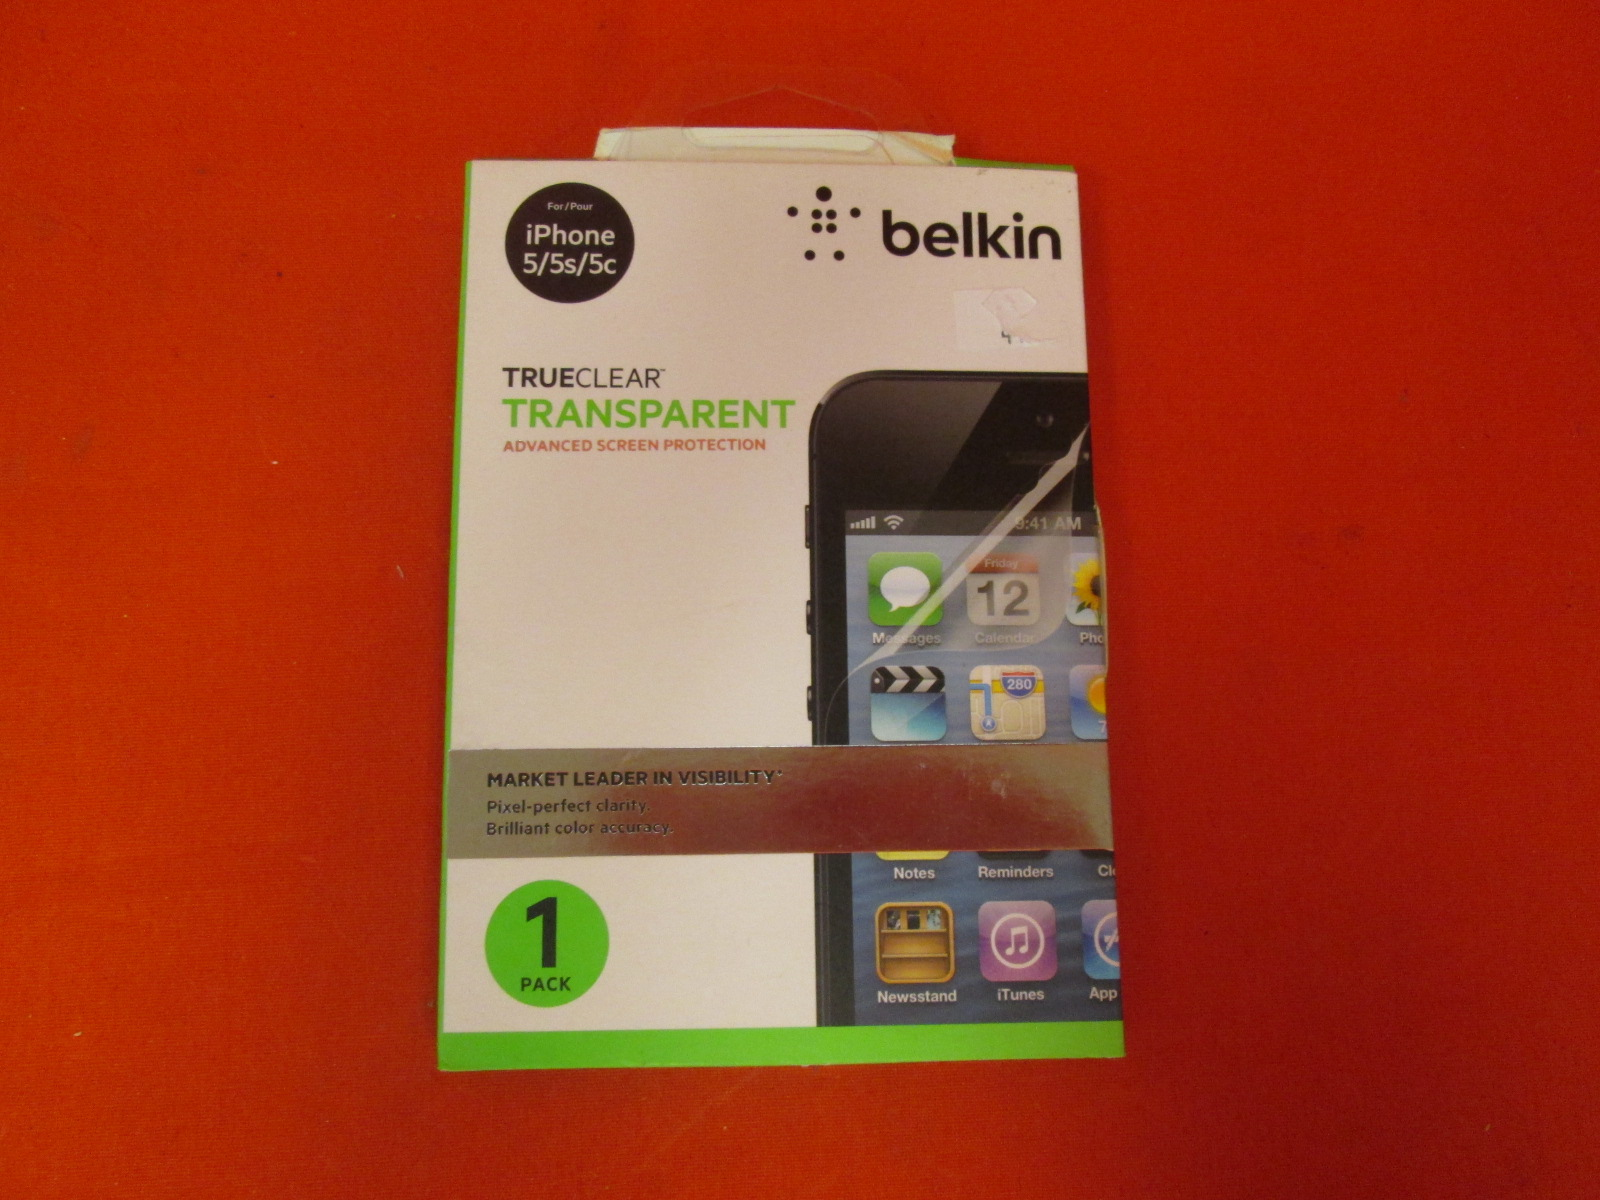 Belkin 1PACK Trueclear Transparent Advanced Screen Protection For